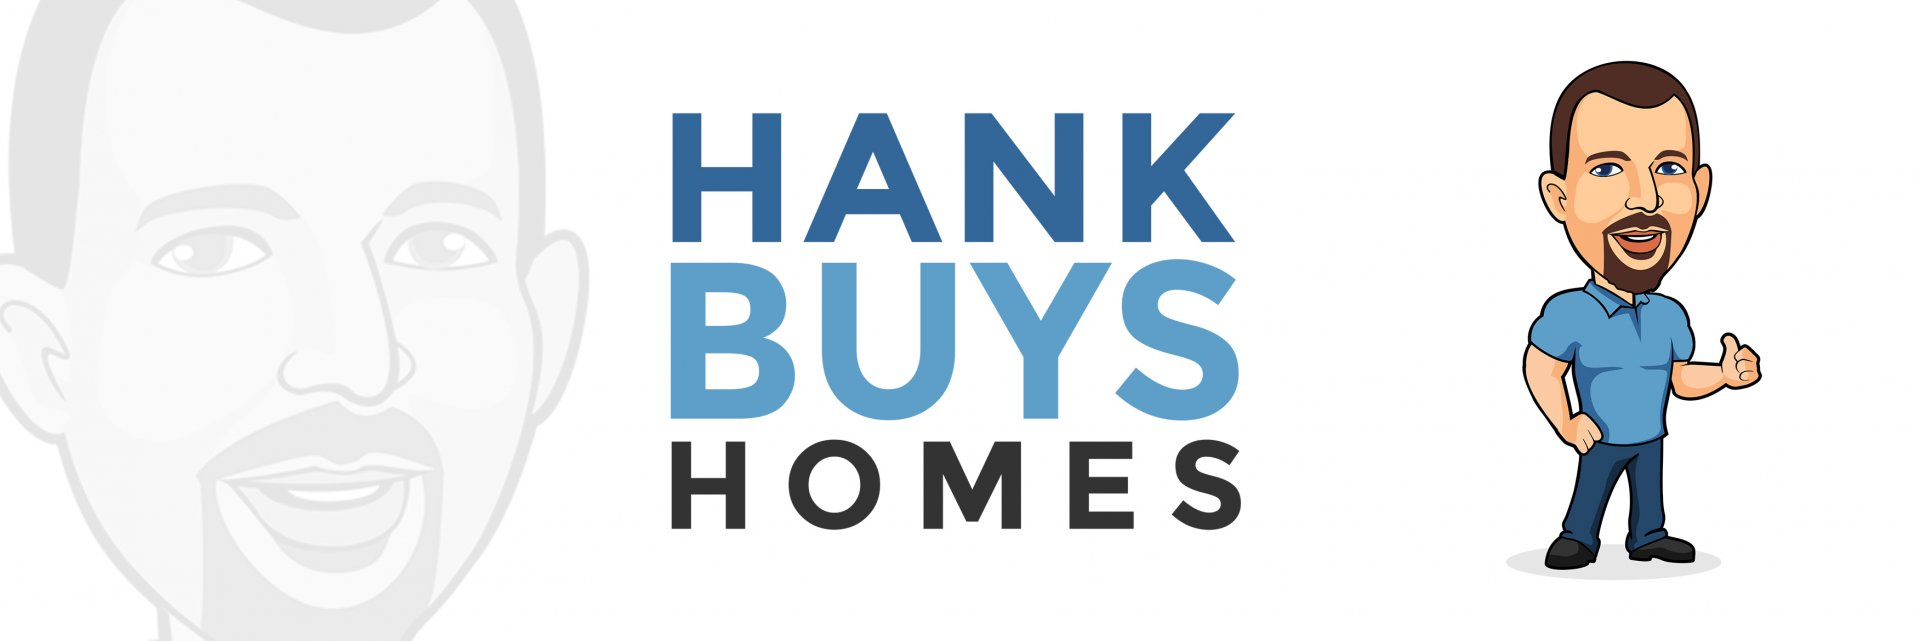 Hank Buys Homes logo